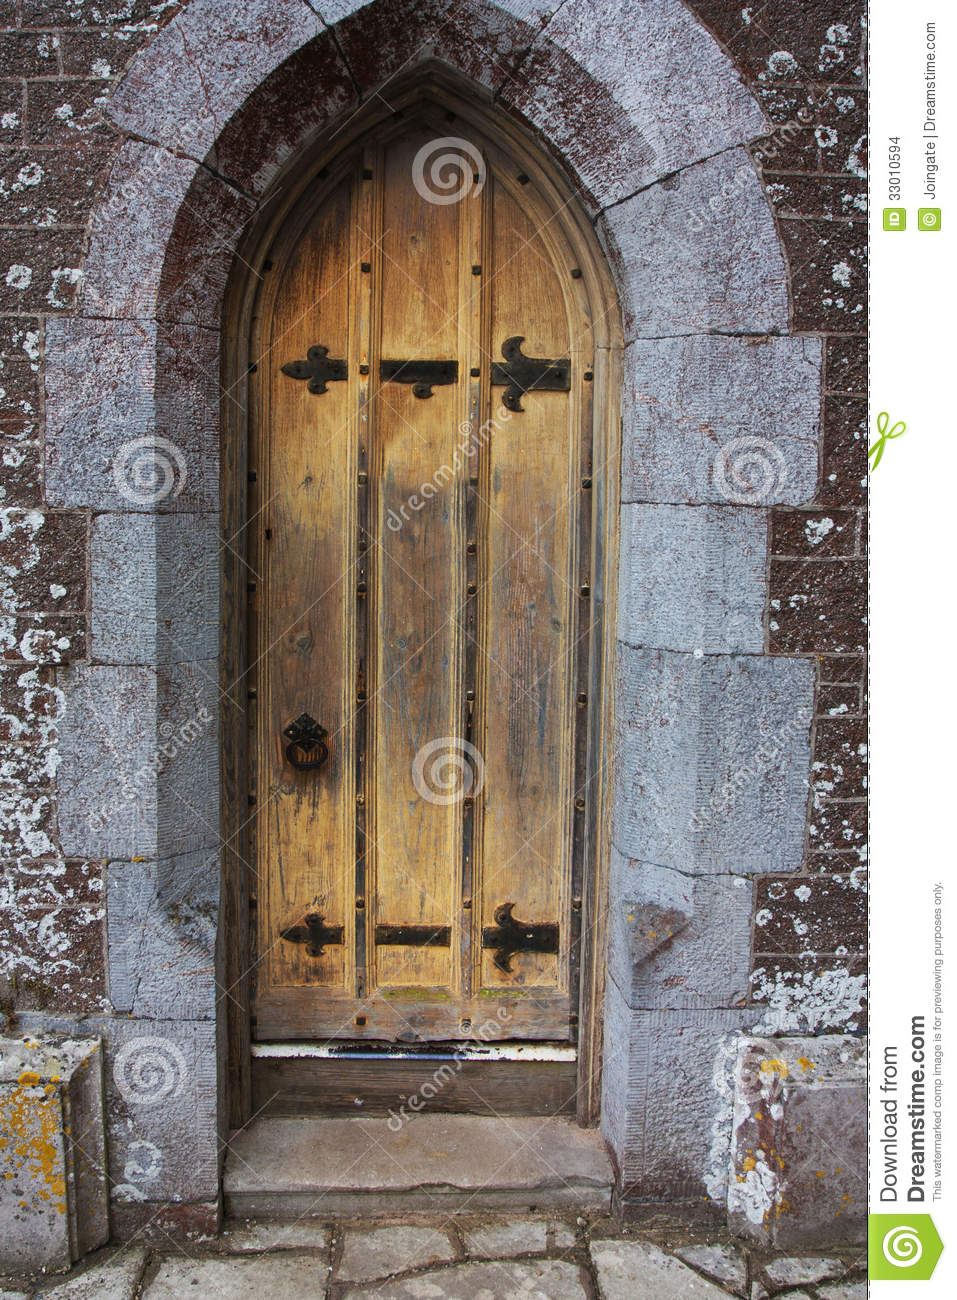 Old tudor wooden oak door wih latches and locks - Old Tudor Wooden Oak Door Wih Latches And Locks Stock Photo - Image